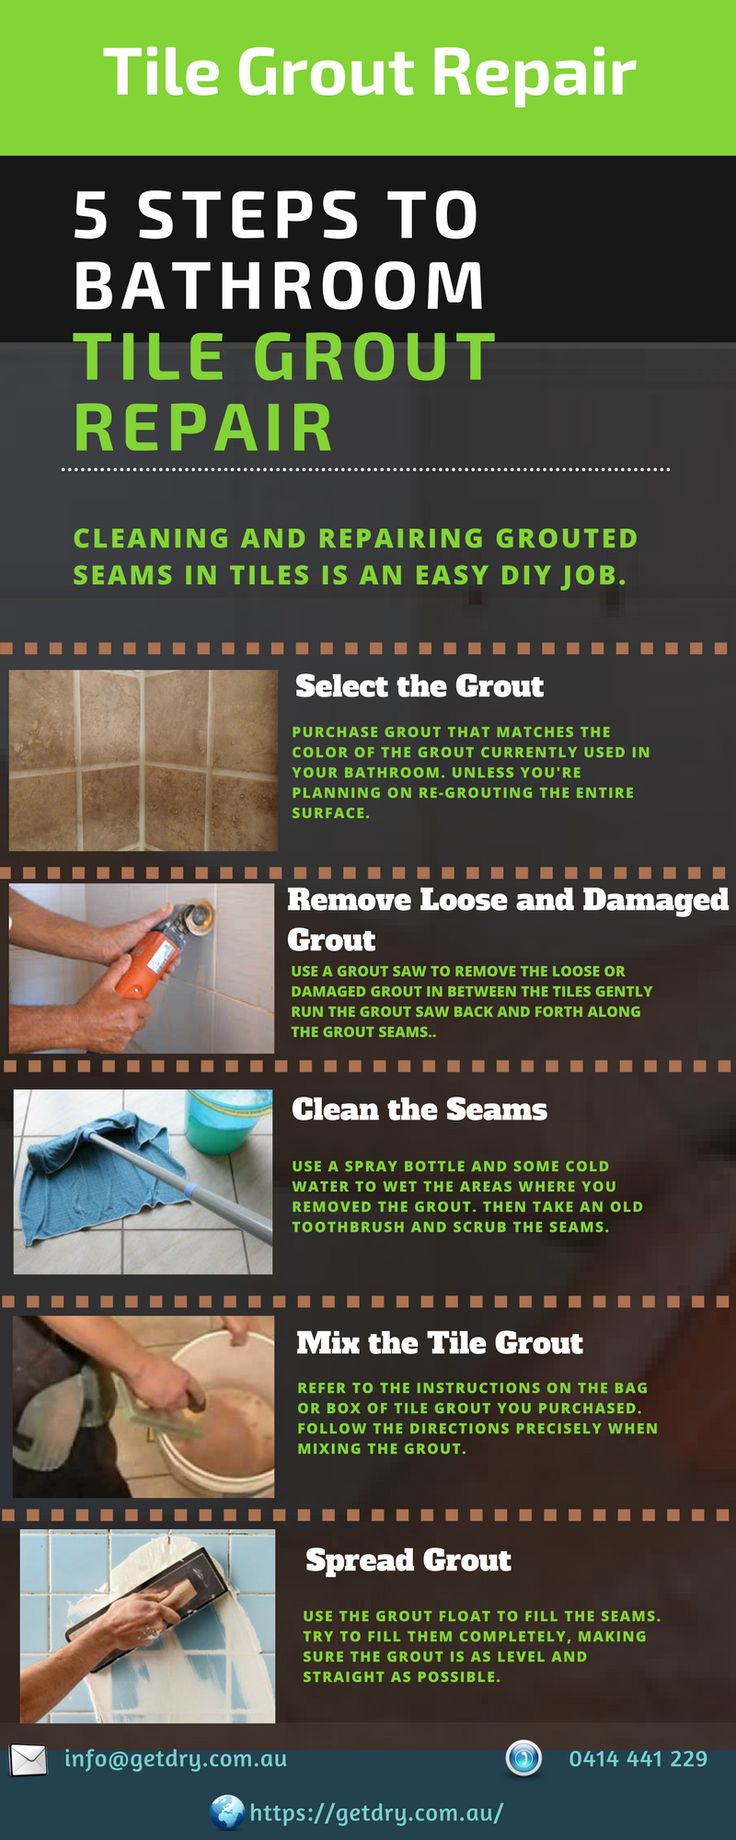 Here are 5 important steps for #tile #grout #repair in bathroom.